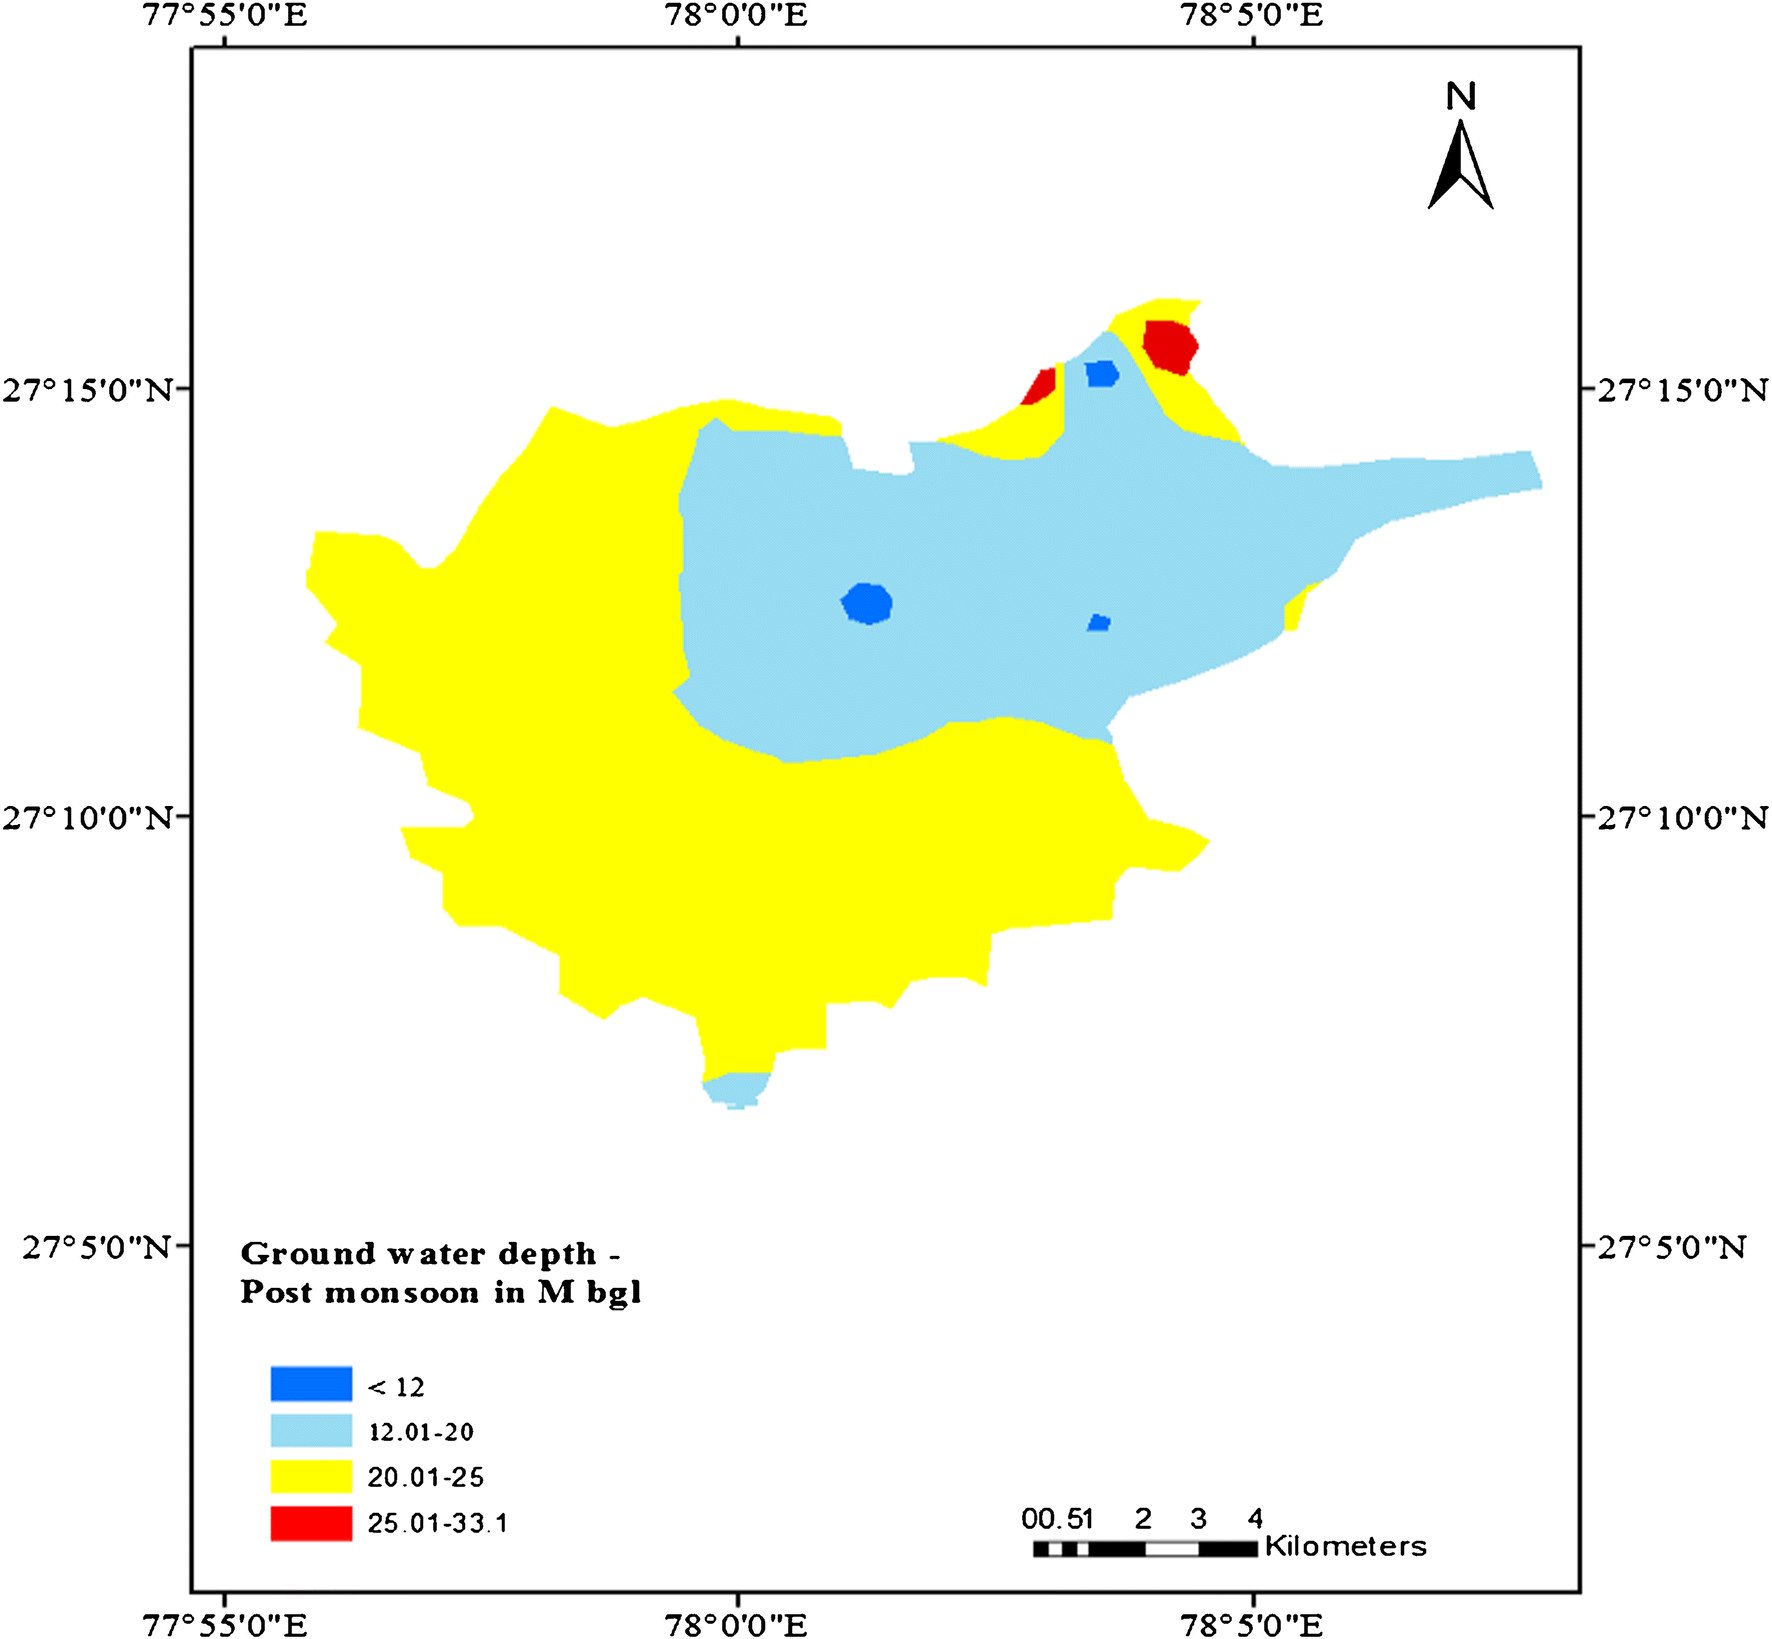 Spatio-temporal analysis of groundwater levels and